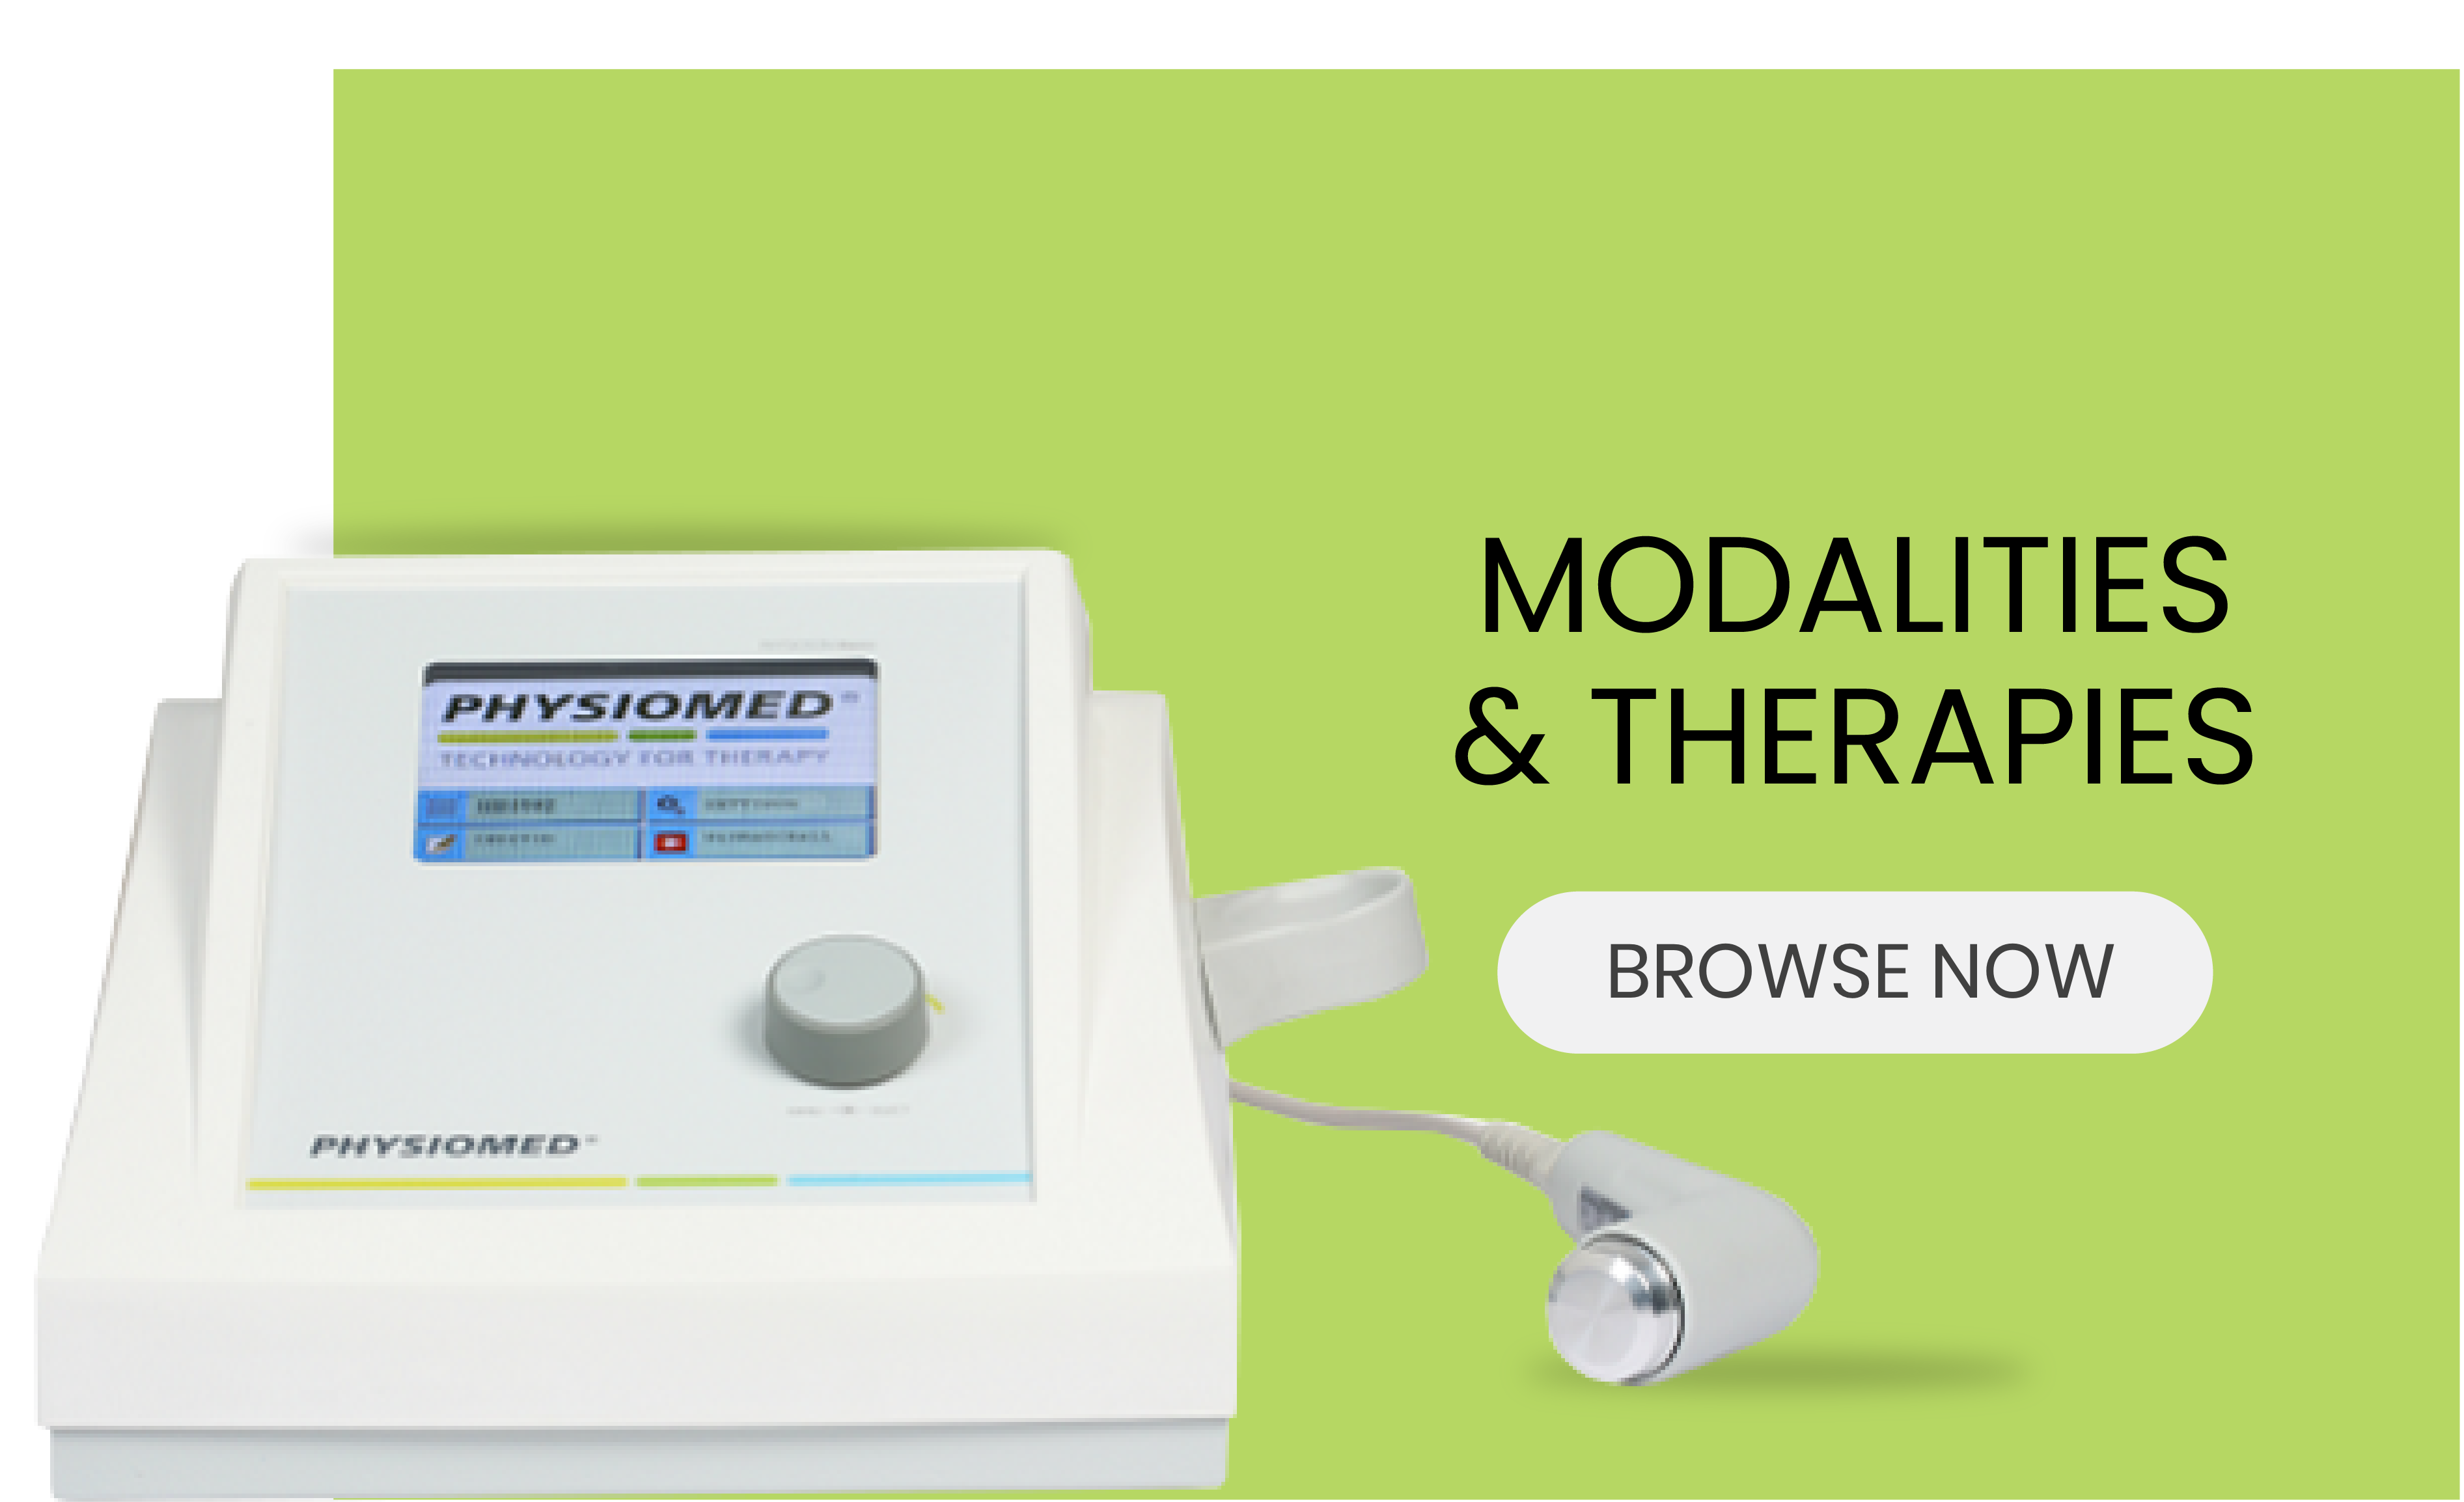 Modalities and Therapies